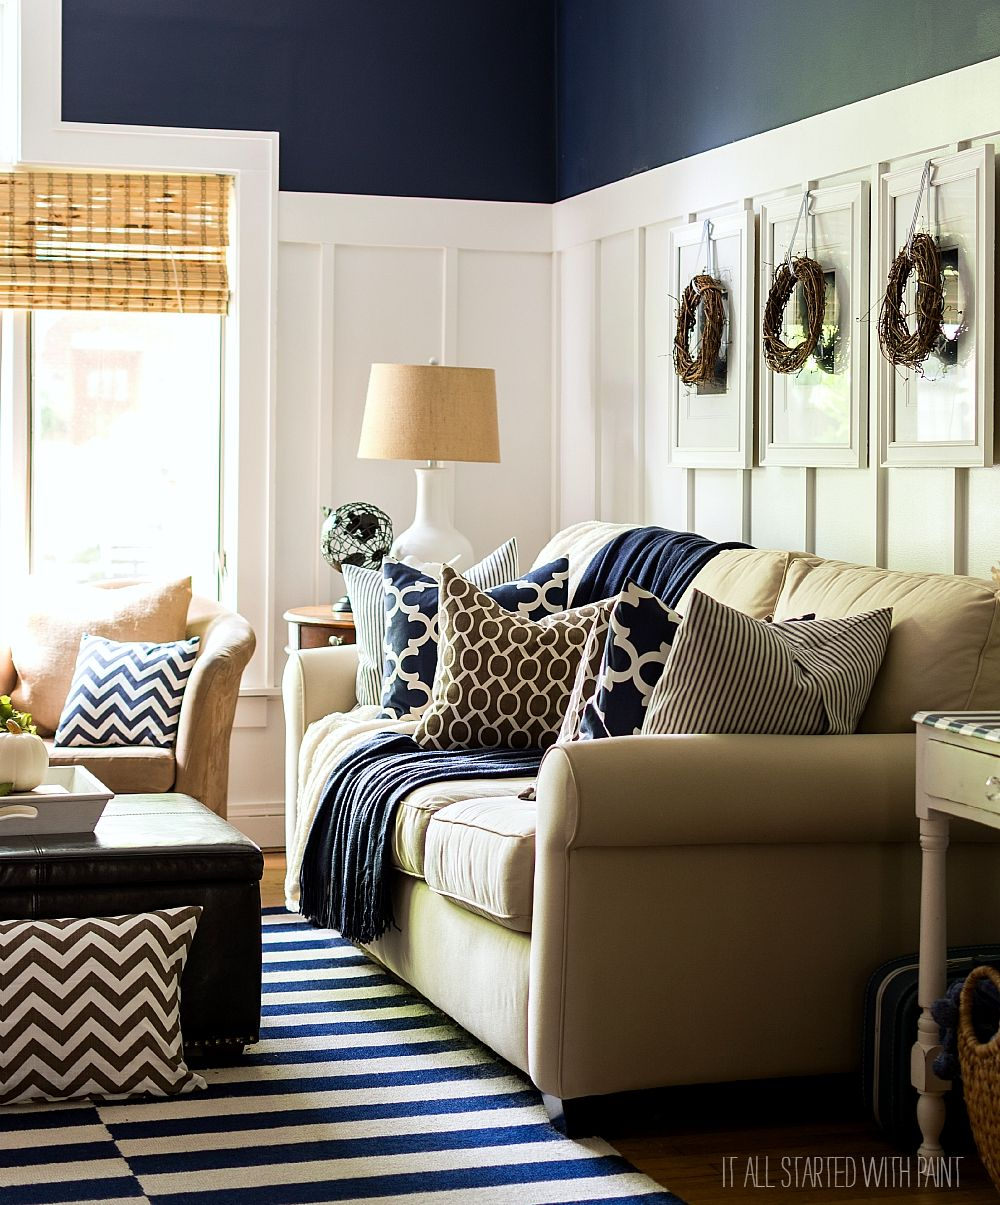 Fall Decor In Navy And Blue Blue Living Room Decor Navy Blue Living Room Brown Living Room Decor